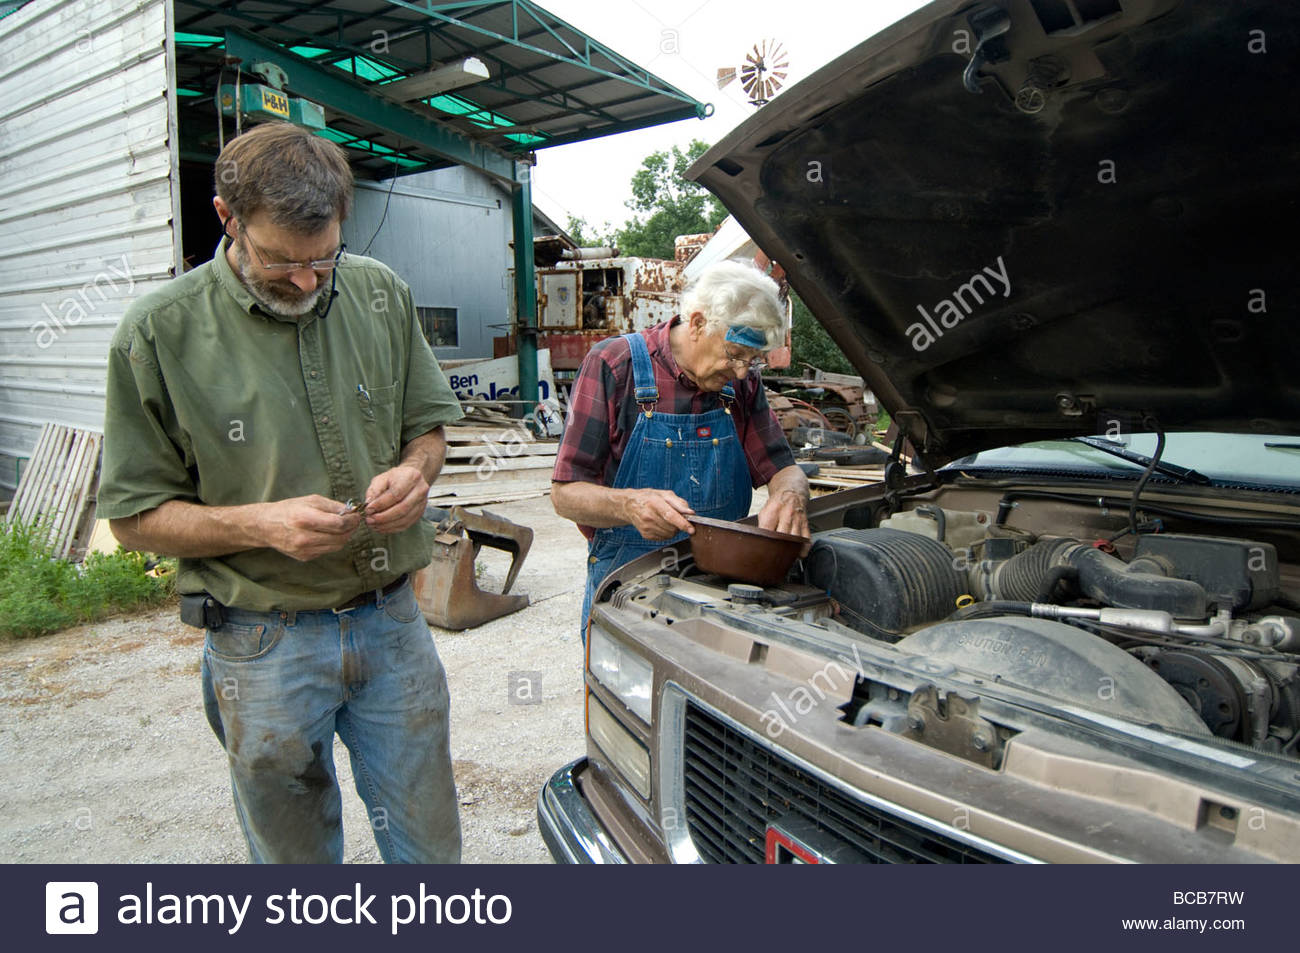 Two men repair a truck engine at a farm in Nebraska. - Stock Image